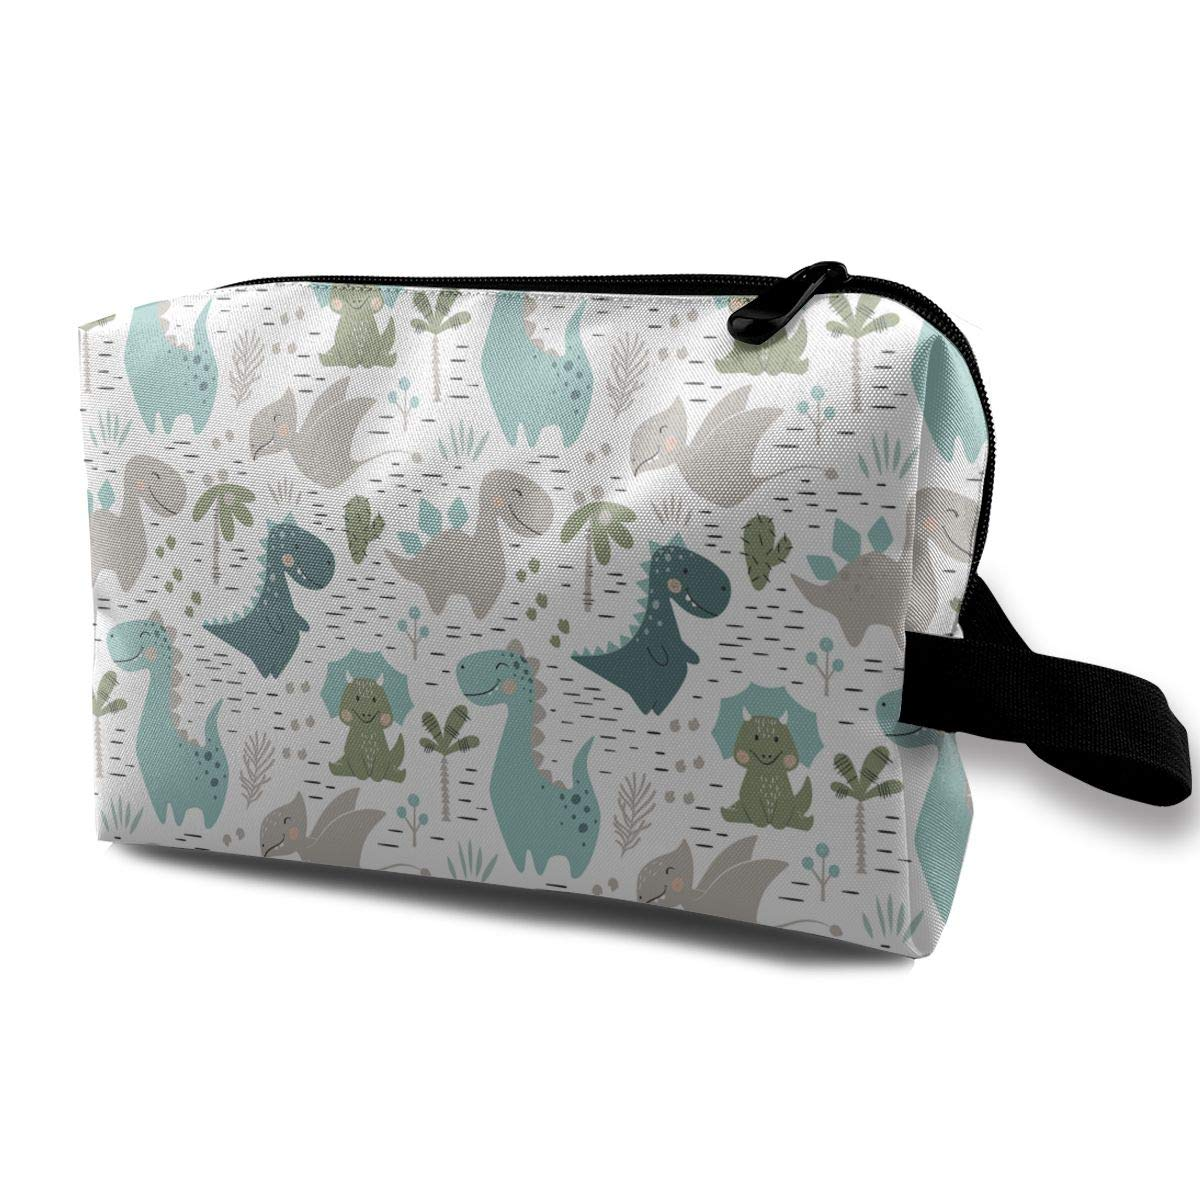 Travel Cosmetic Bag Large Dinosaur Zip Makeup With San Diego Mall Manufacturer direct delivery Organizer